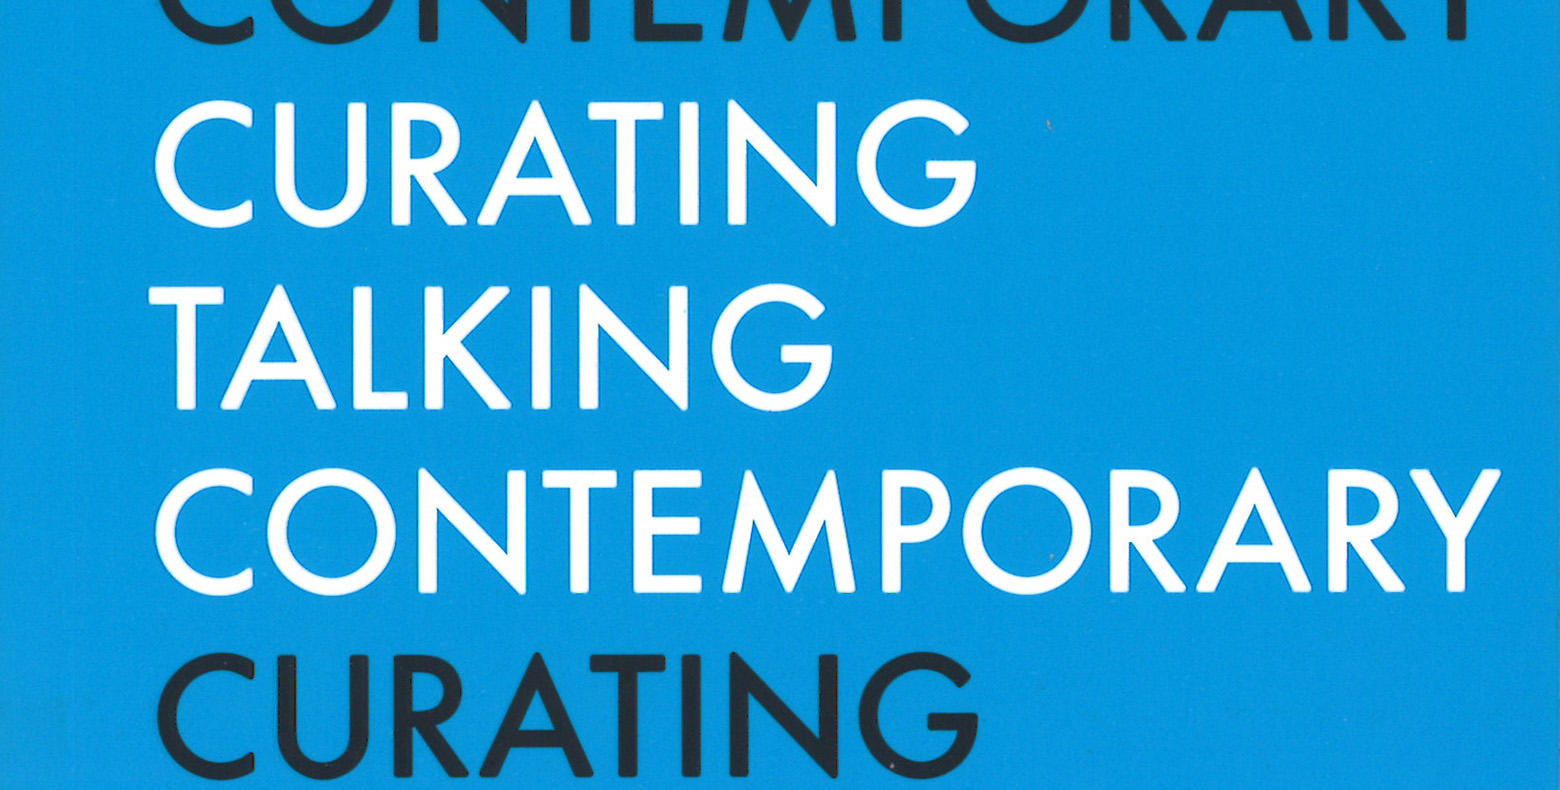 Terry Smith, Talking Contemporary Curating, 2015. Published by Independent Curators International, New York.